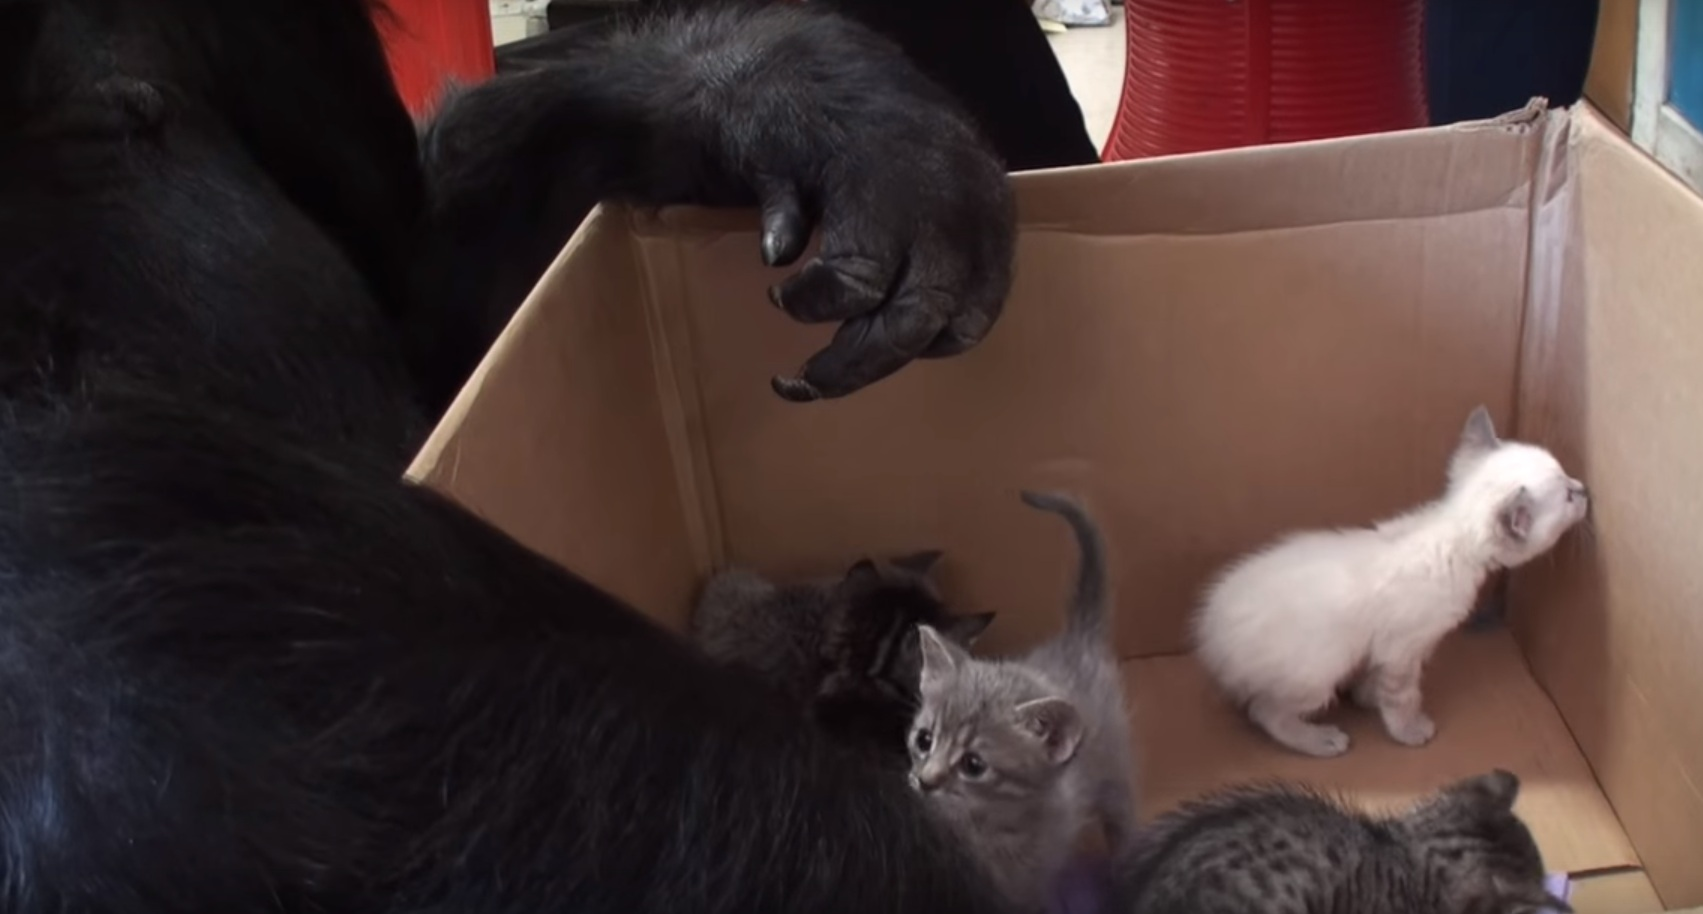 Gorilla adopts kittens